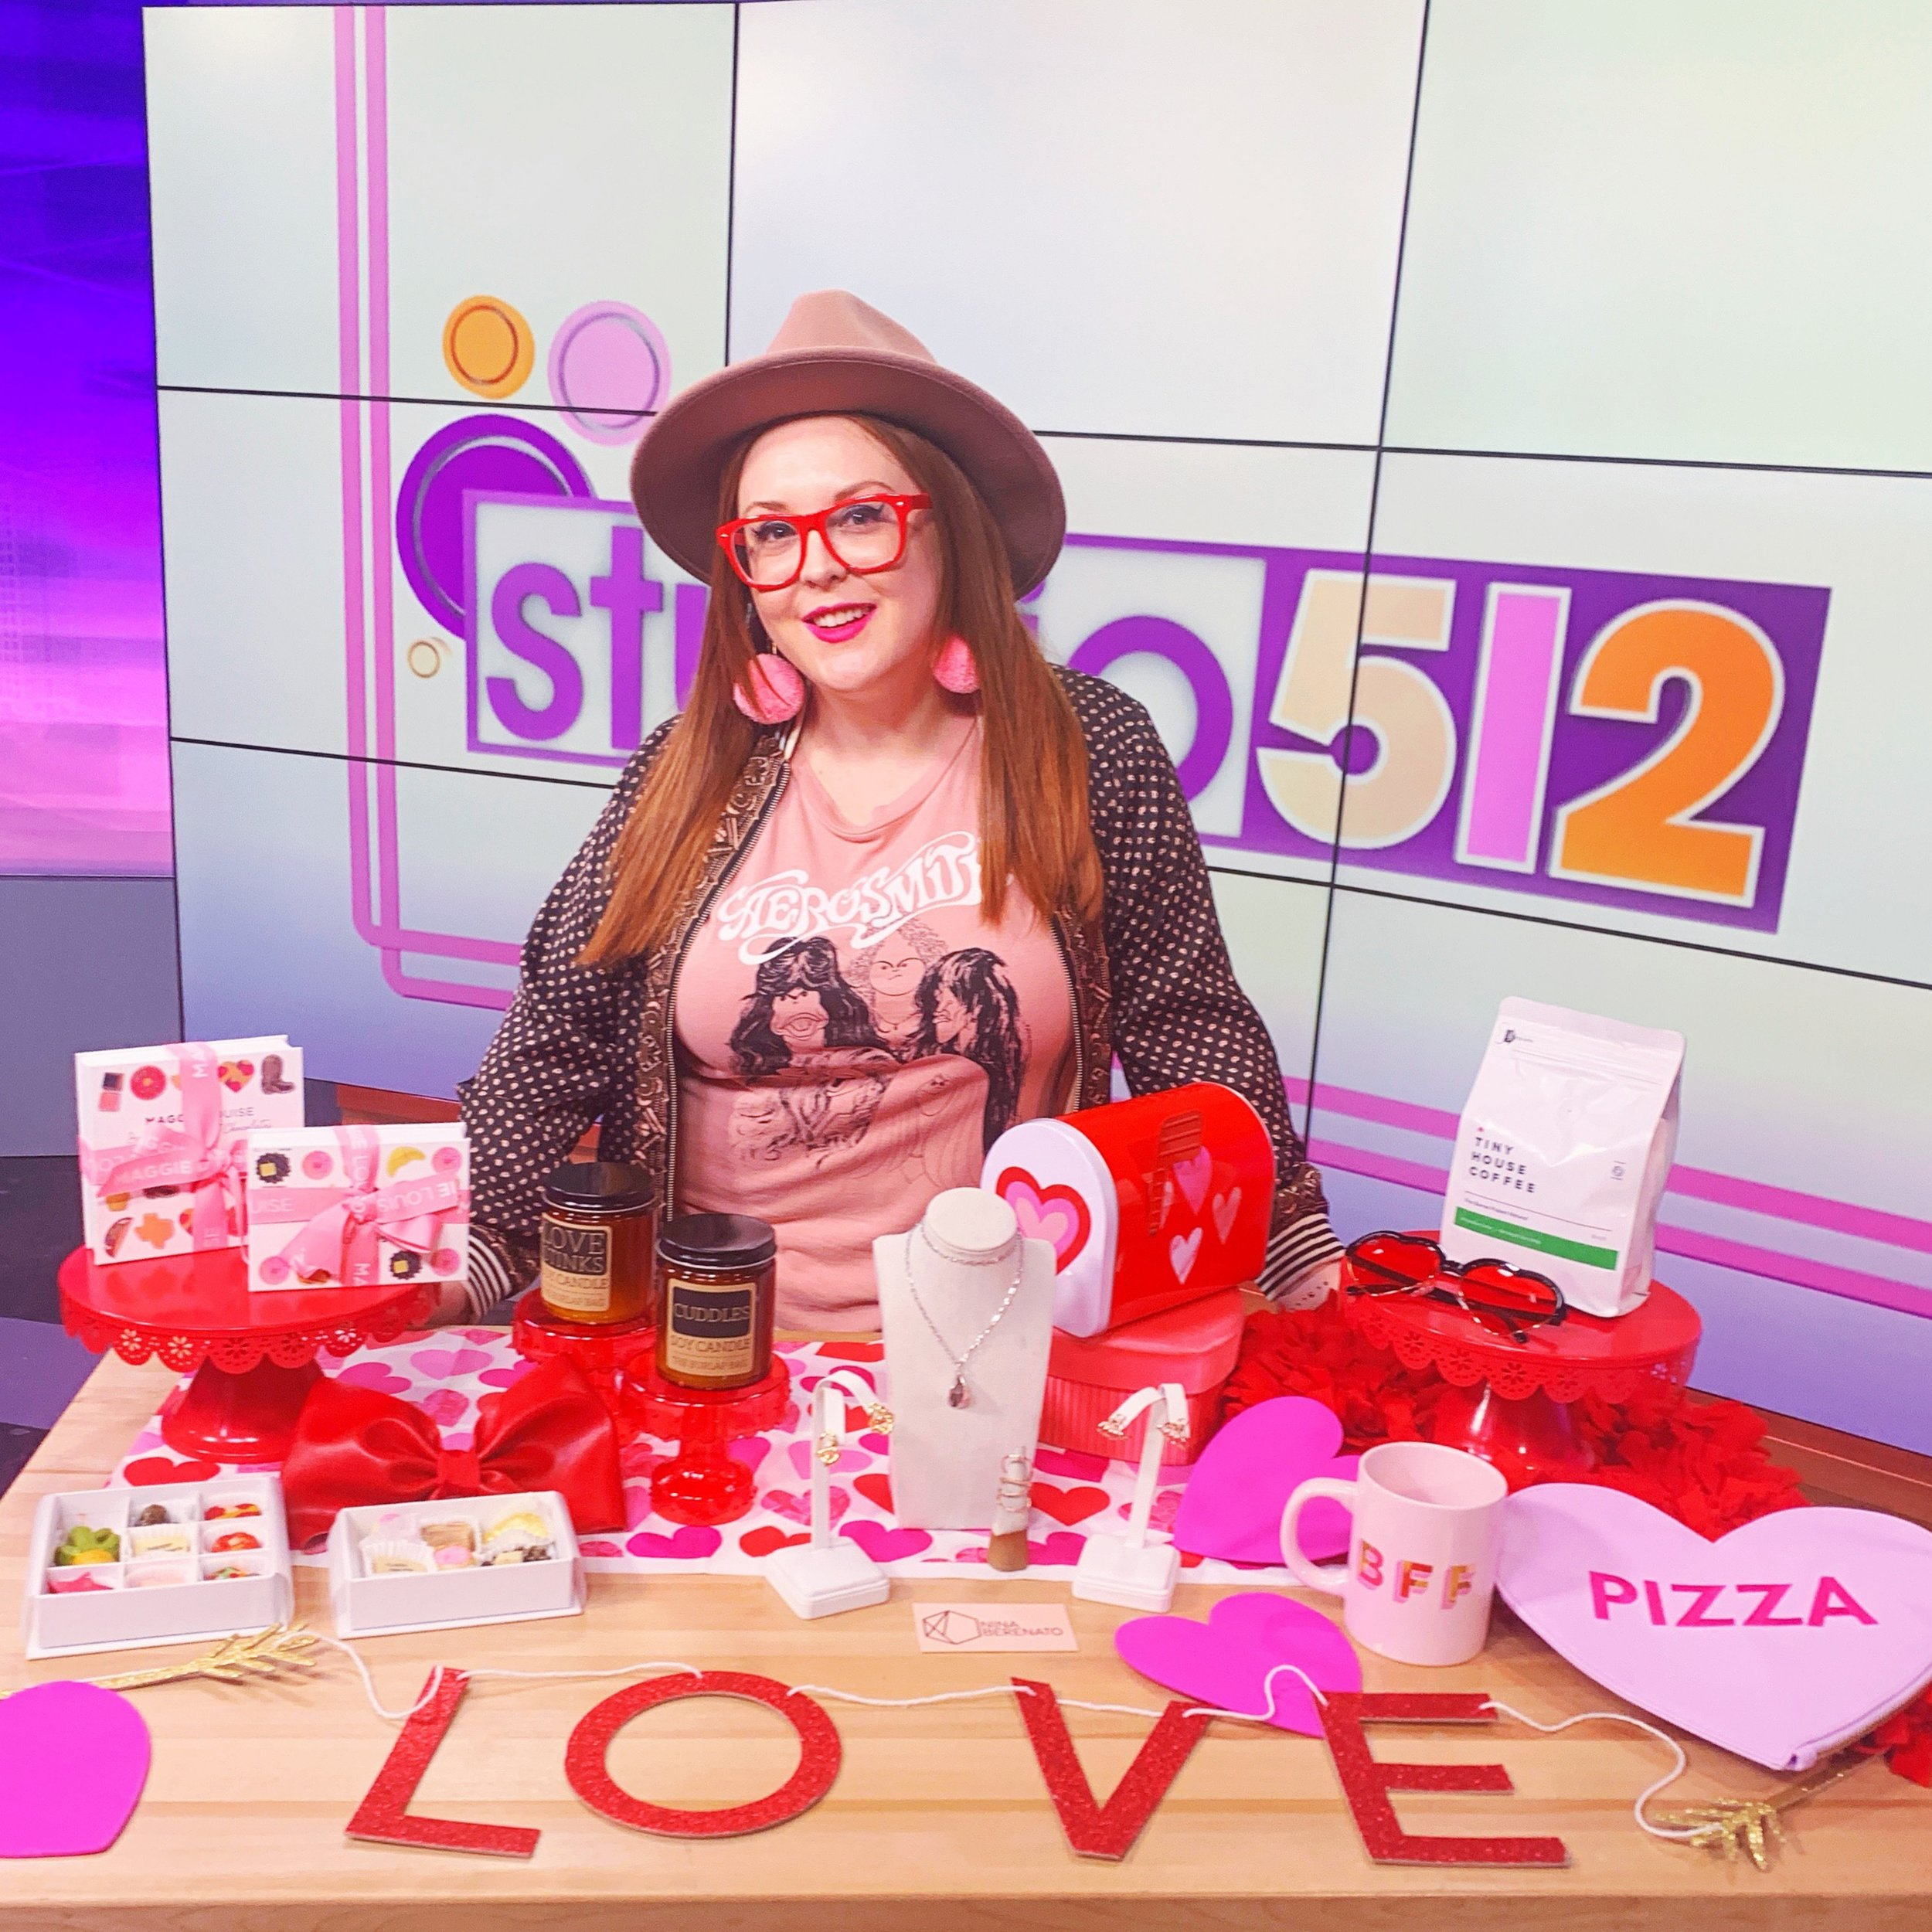 kxan-studio-512-galentines-day-segment-with-local-austin-gift-guide.jpg